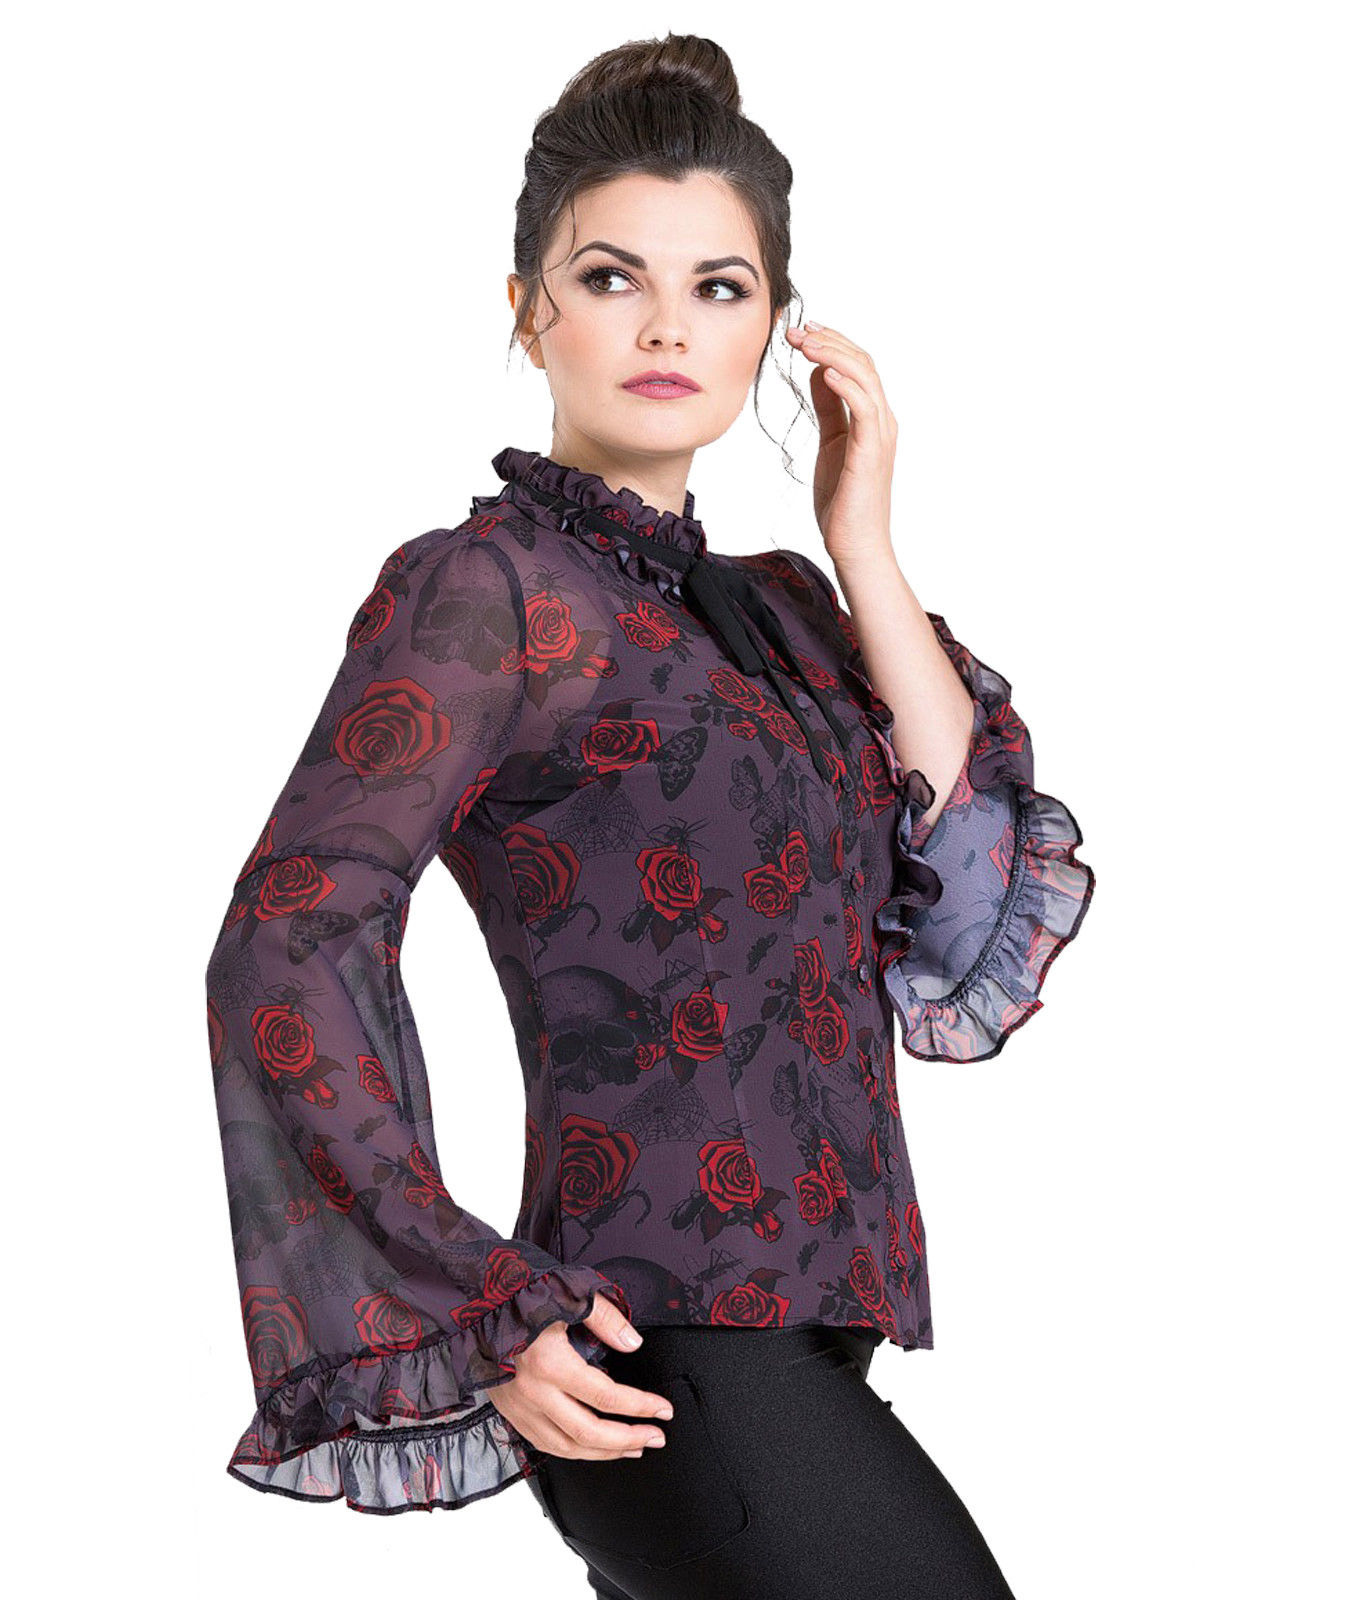 Hell-Bunny-Chiffon-Shirt-Top-Gothic-Floaty-BUGS-amp-ROSES-Purple-Blouse-All-Sizes thumbnail 13